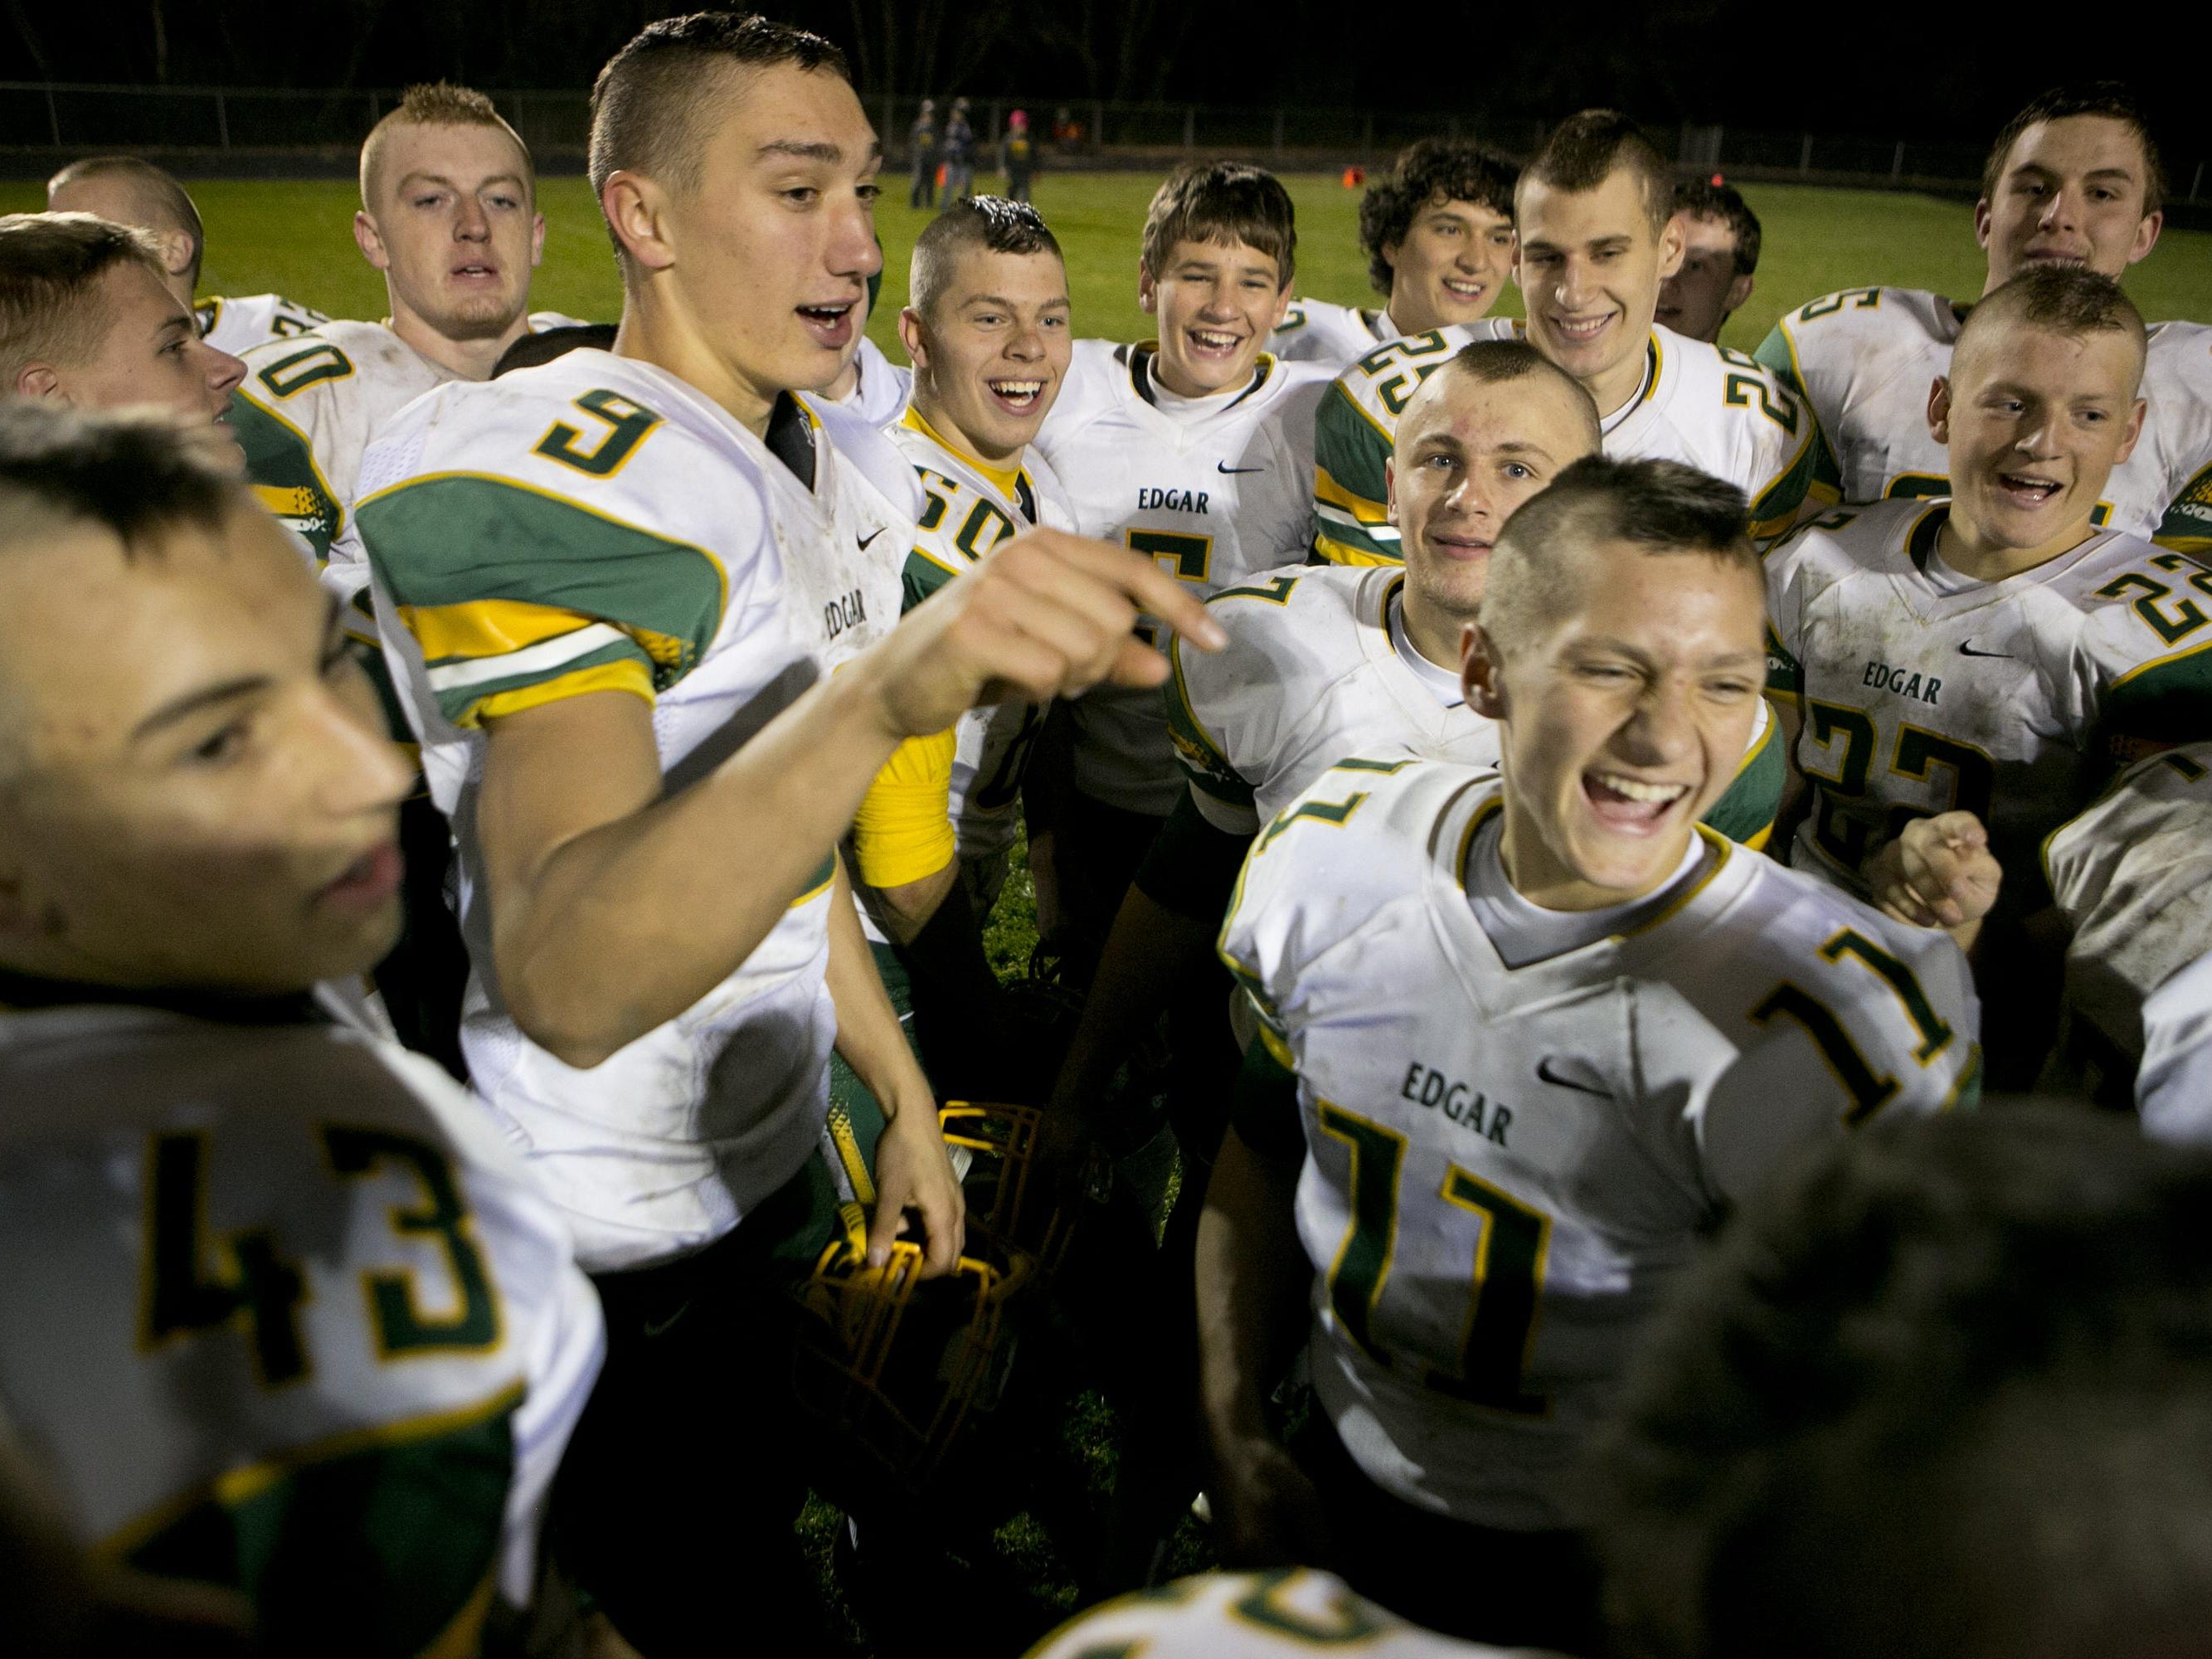 Edgar celebrates its 36-6 win against Marathon after the Level 2 Division 6 football playoff game at Marathon High School, Friday.